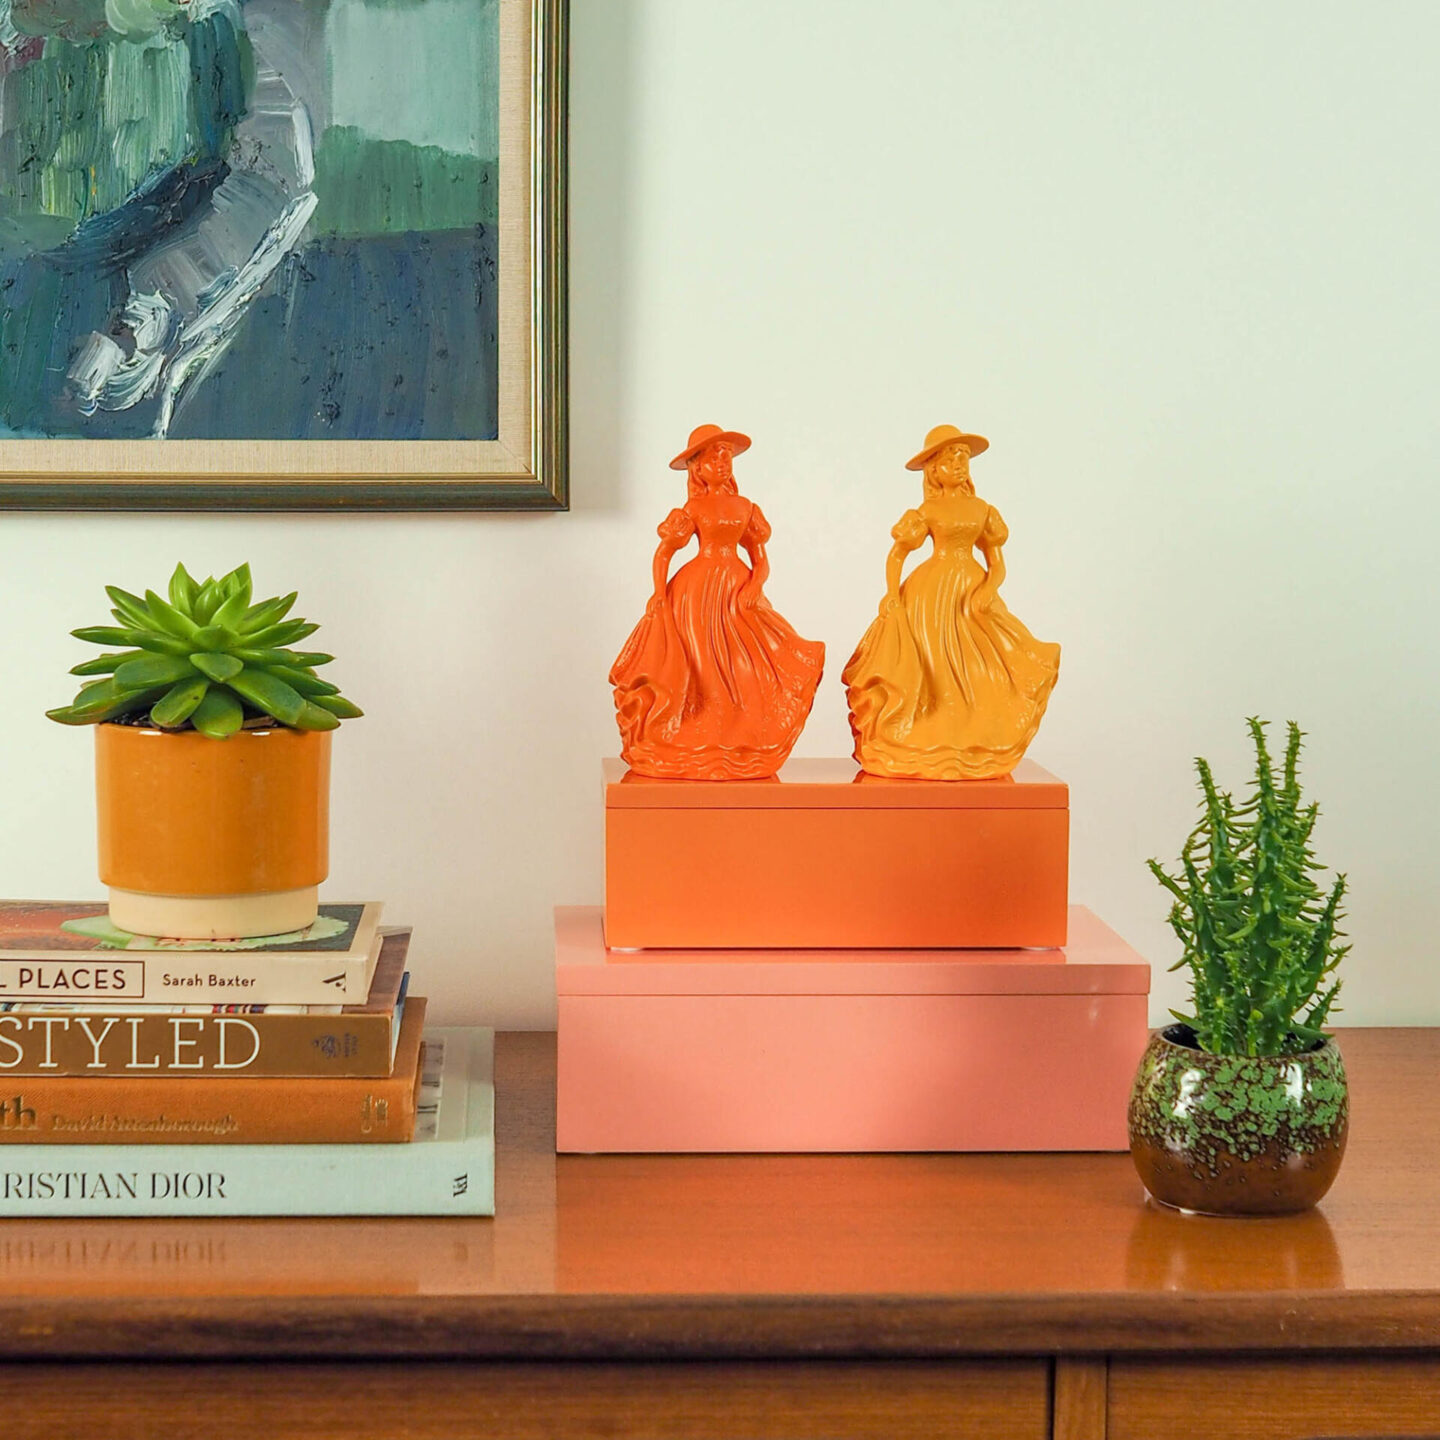 Not Lamb Home: Bold, kitsch upcycled homewares, vintage and decor | Orange and Yellow Ceramic Lady/Girl Figurines